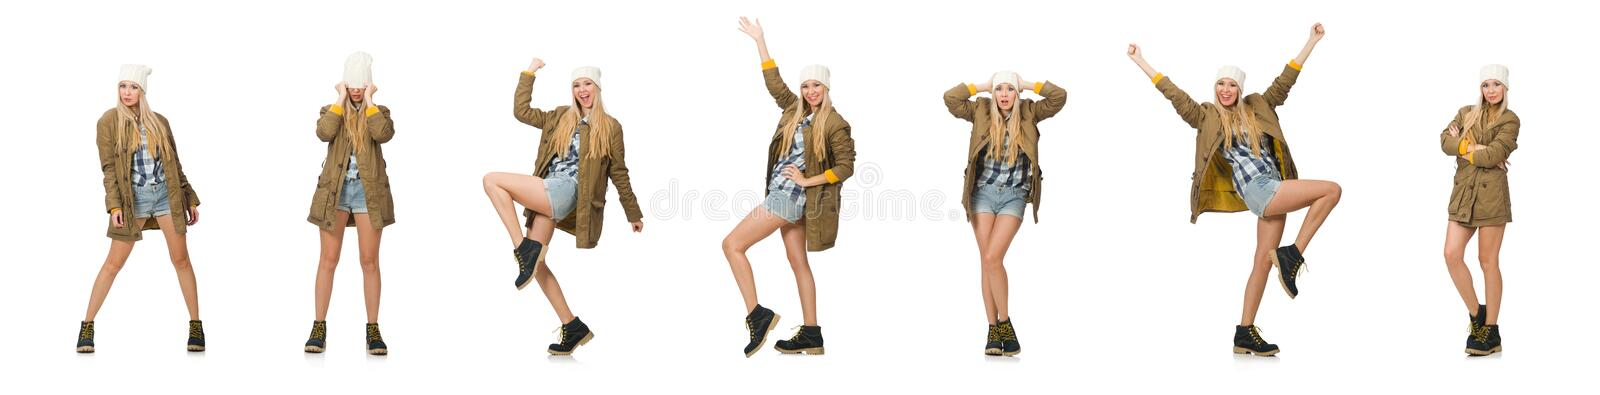 Pretty woman in jeans shorts isolated on white royalty free stock image